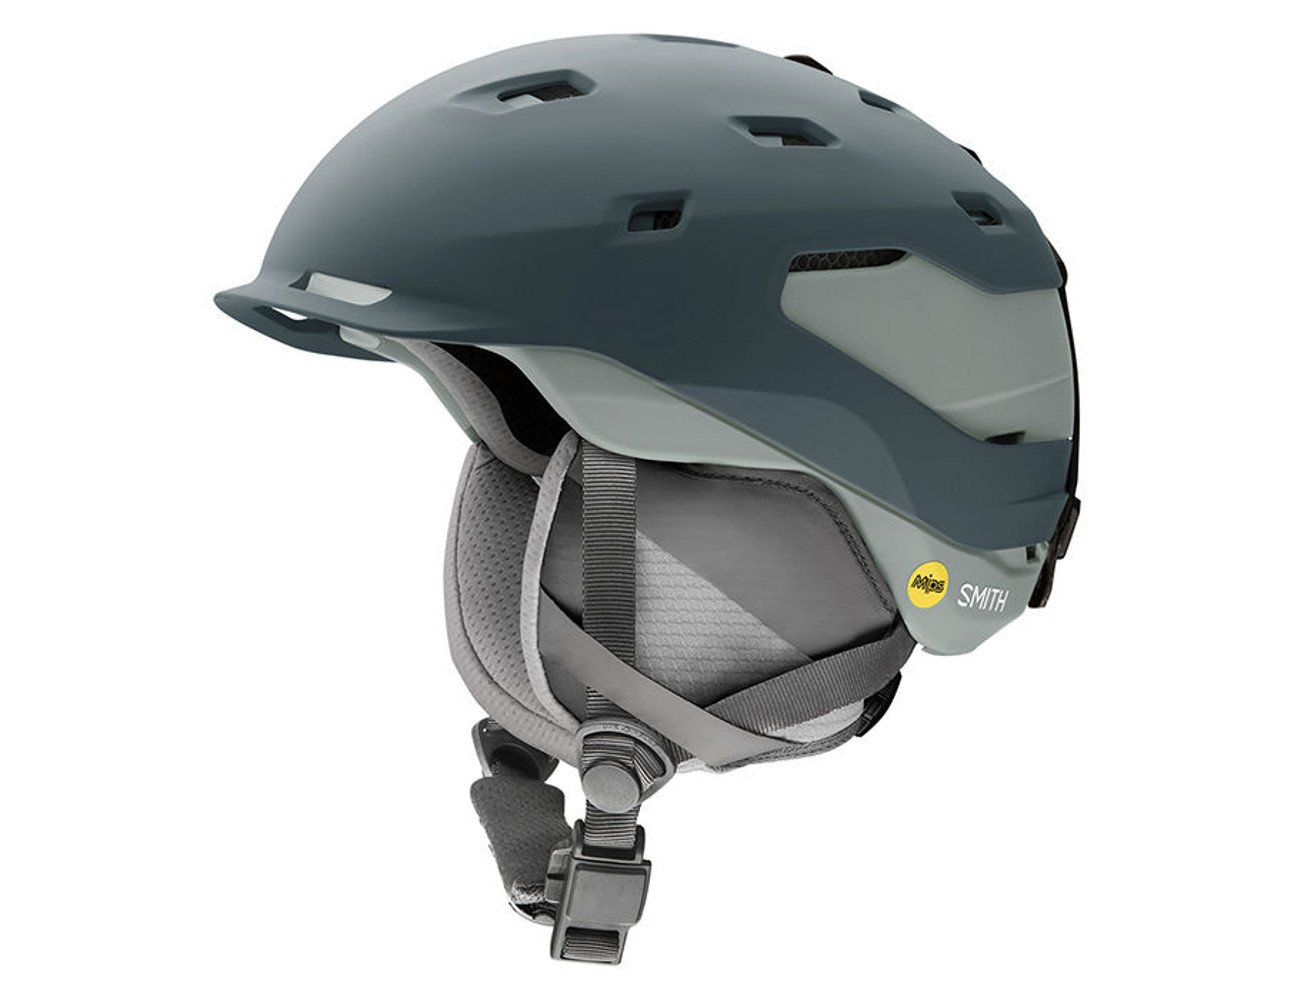 Smith Optics Quantum Adult Mips Ski Snowmobile Helmet - Matte Thunder Gray / Large by Smith Optics